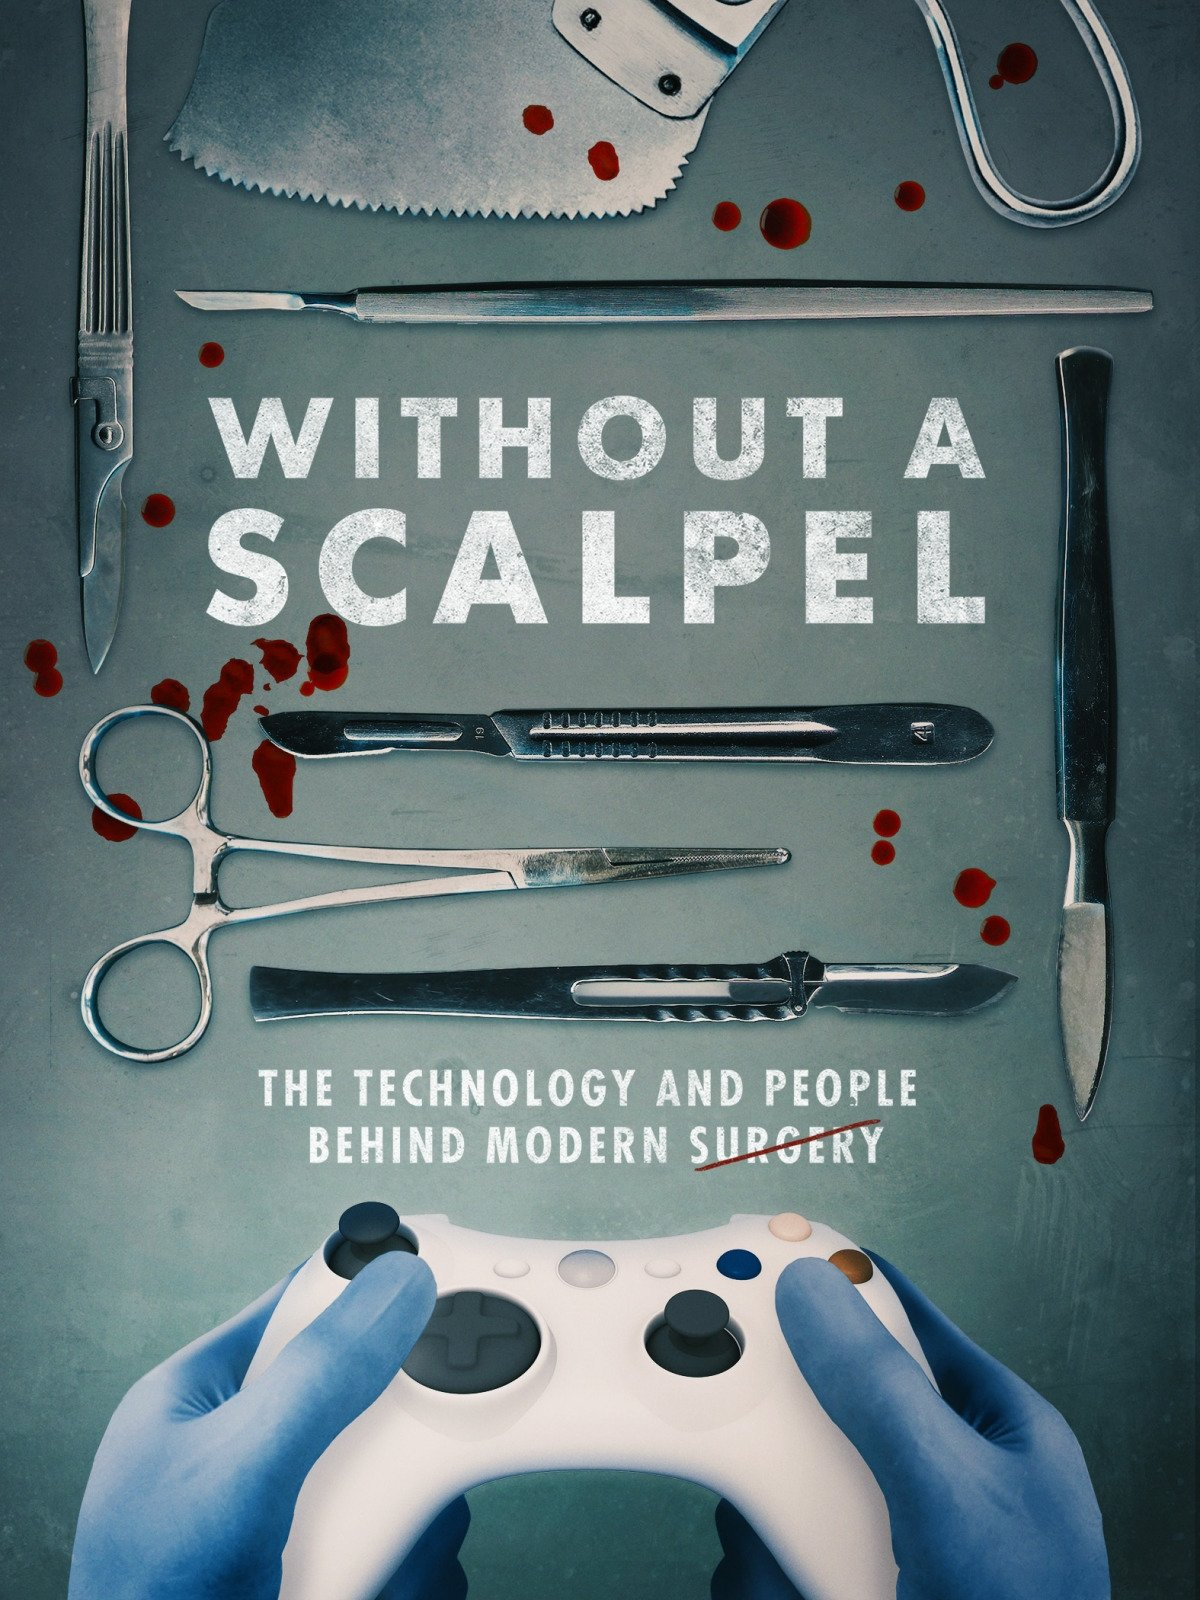 Amazon.com: Without a Scalpel: Dr. Gregg Alzate, Dr. E. Brooke ...